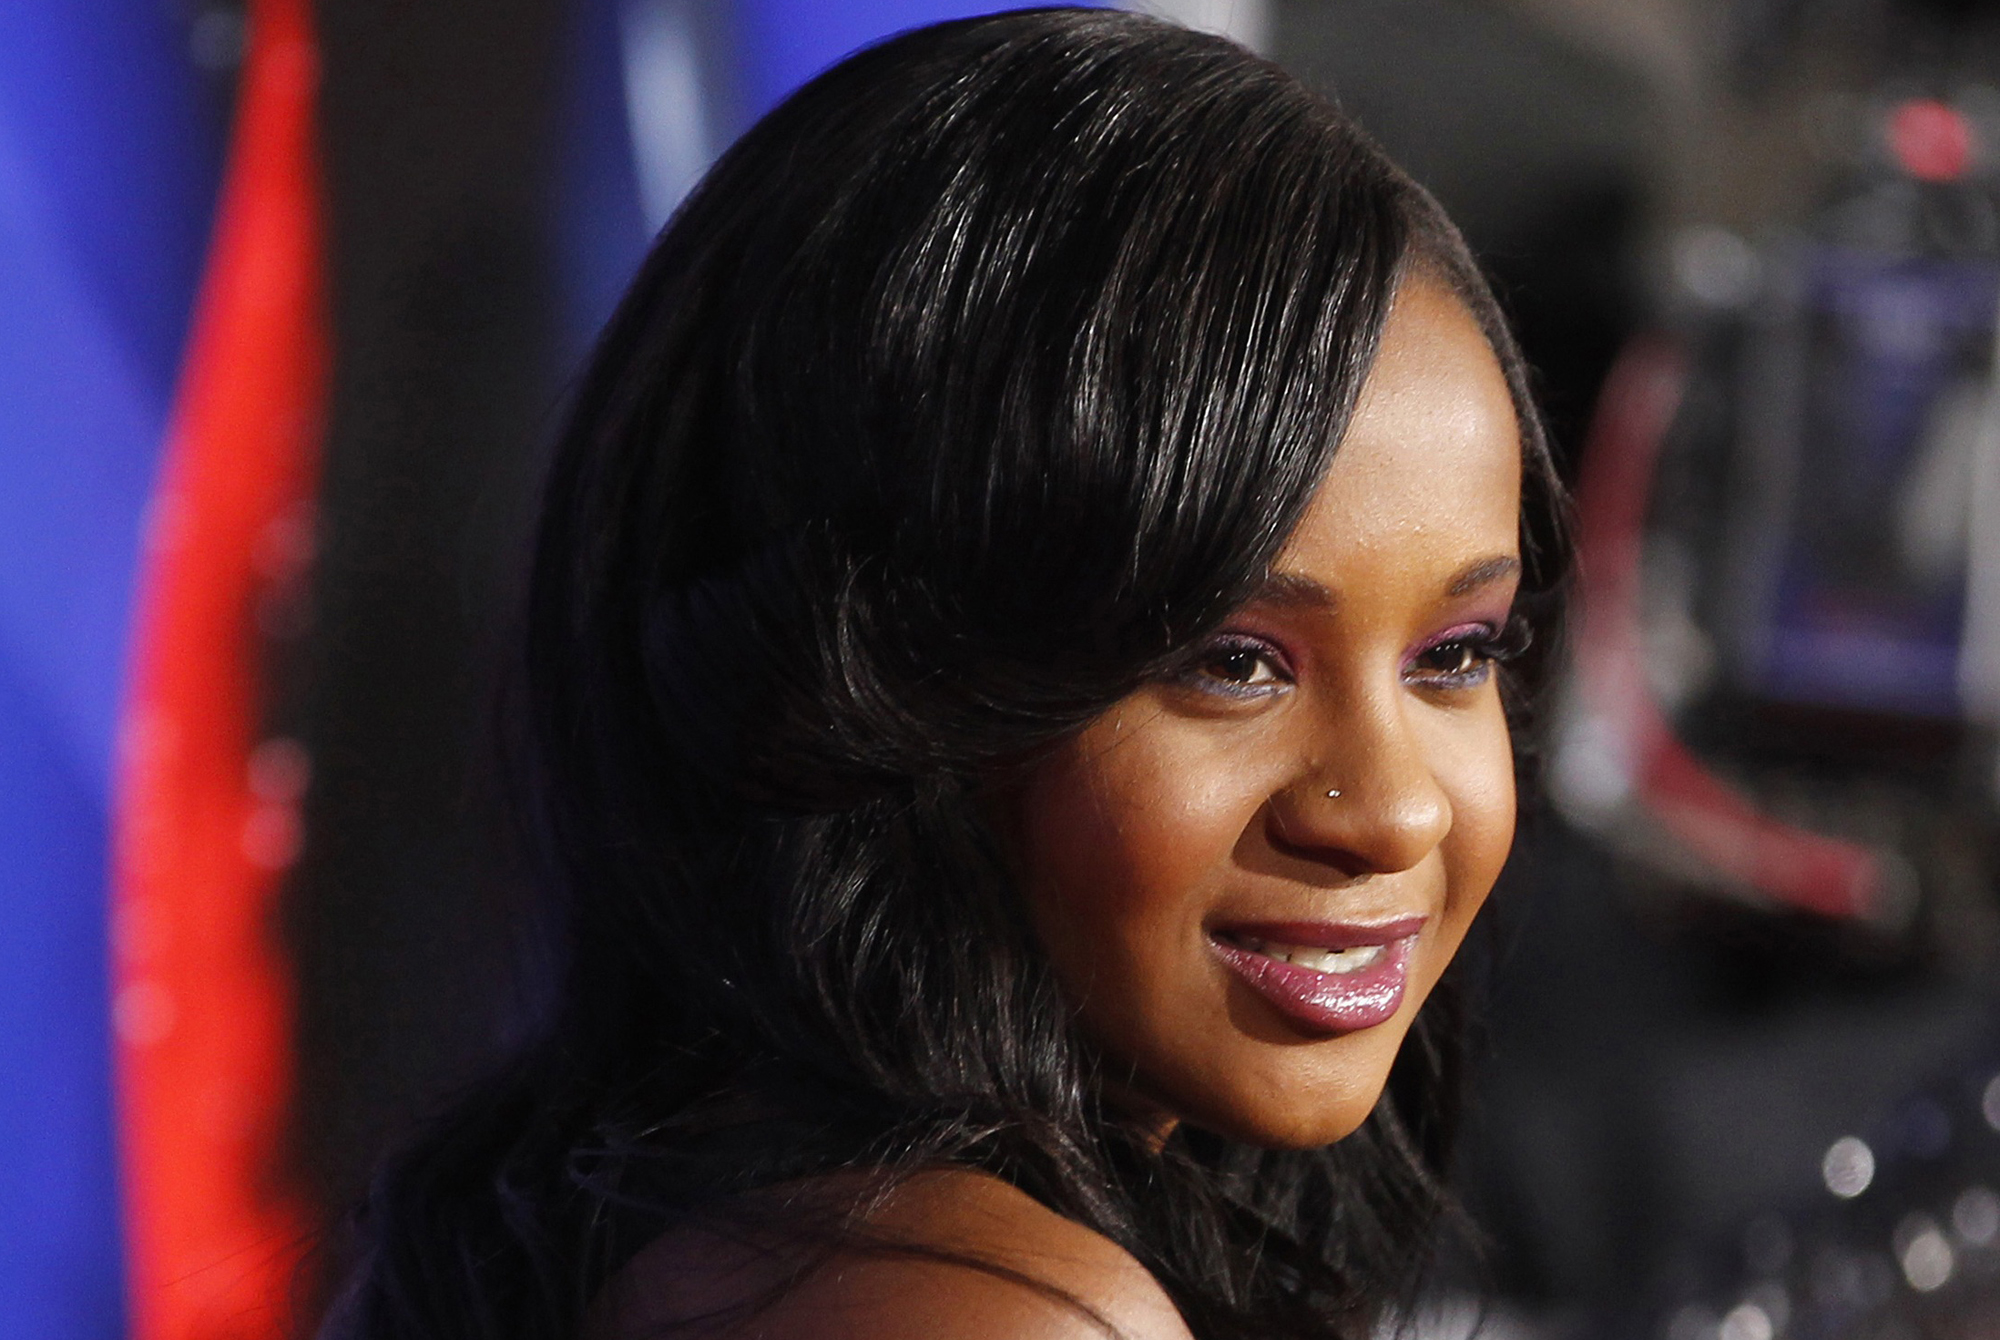 """Bobbi Kristina Brown, daughter of the late singer Whitney Houston, poses at the premiere of """"Sparkle"""" in Hollywood, California, in this file photo taken August 16, 2012. Brown, daughter of late pop star Whitney Houston and of Bobby Brown, was rushed to the hospital after she was found unresponsive in the bathtub of her home in Roswell, Georgia, CNN reported on Saturday, citing police.   REUTERS/Fred Prouser/Files   (UNITED STATES - Tags: ENTERTAINMENT)"""